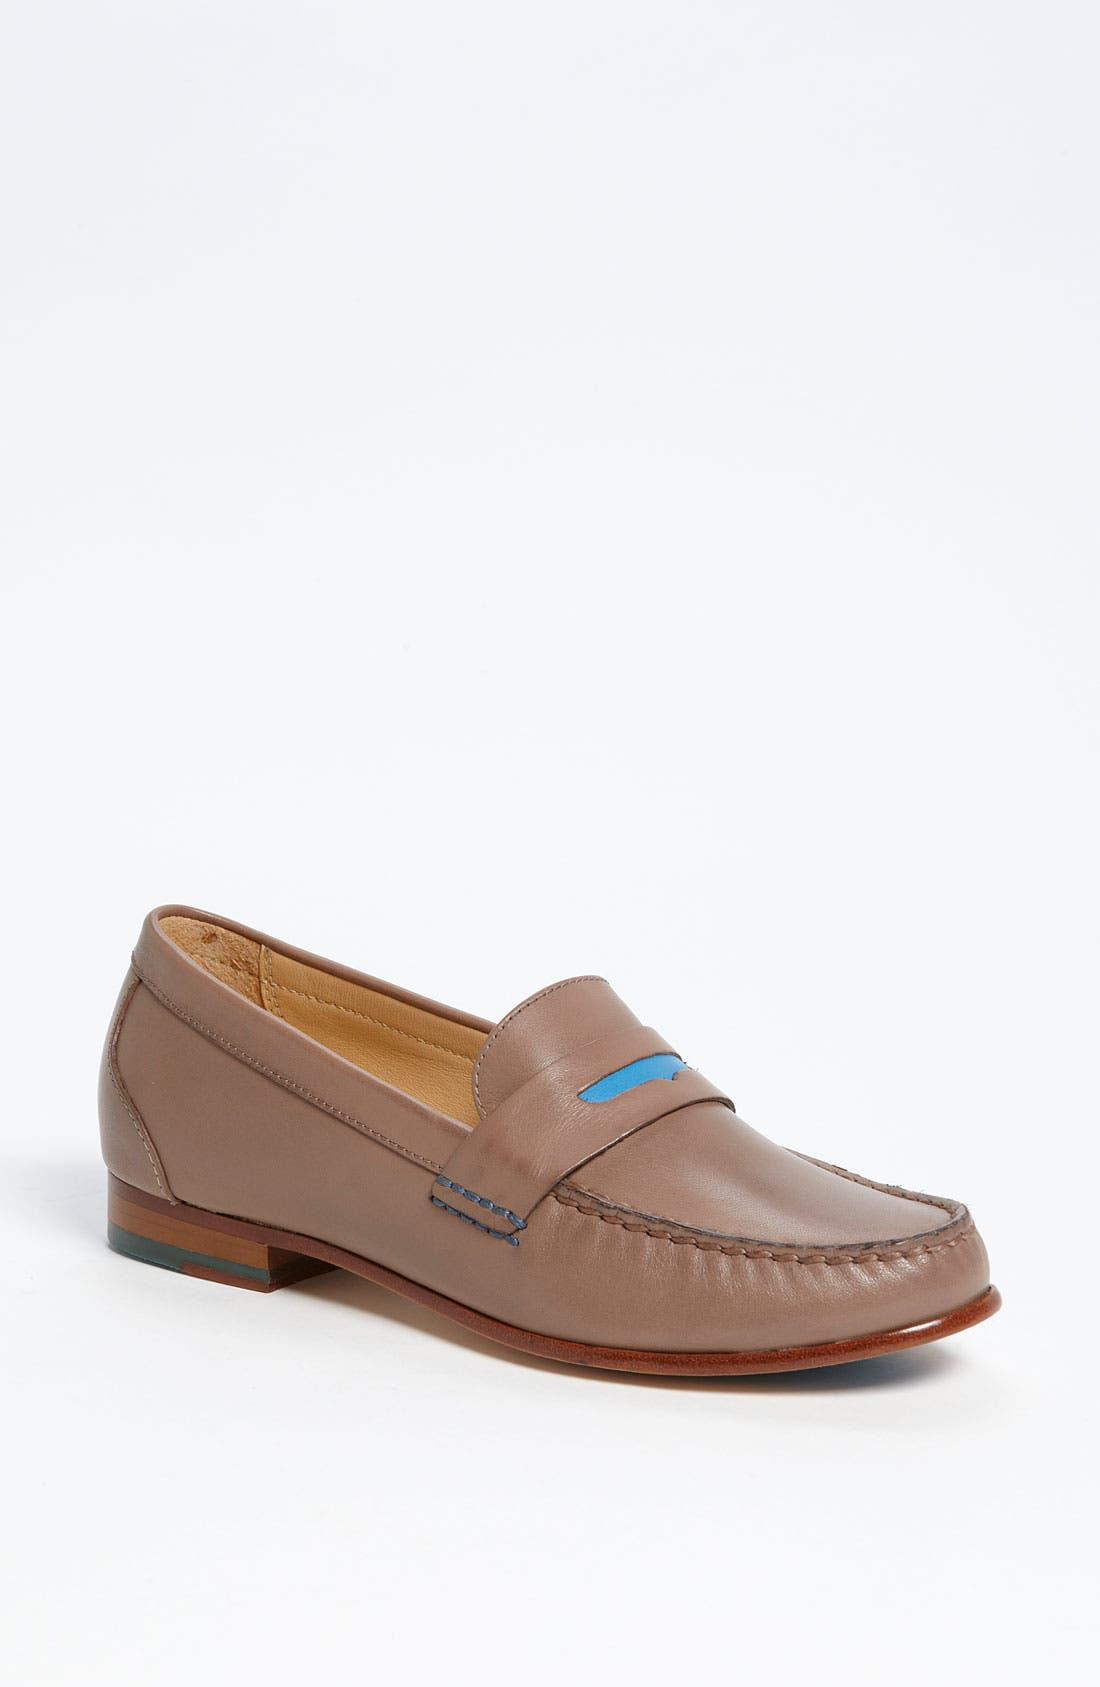 Main Image - Cole Haan 'Monroe' Penny Loafer